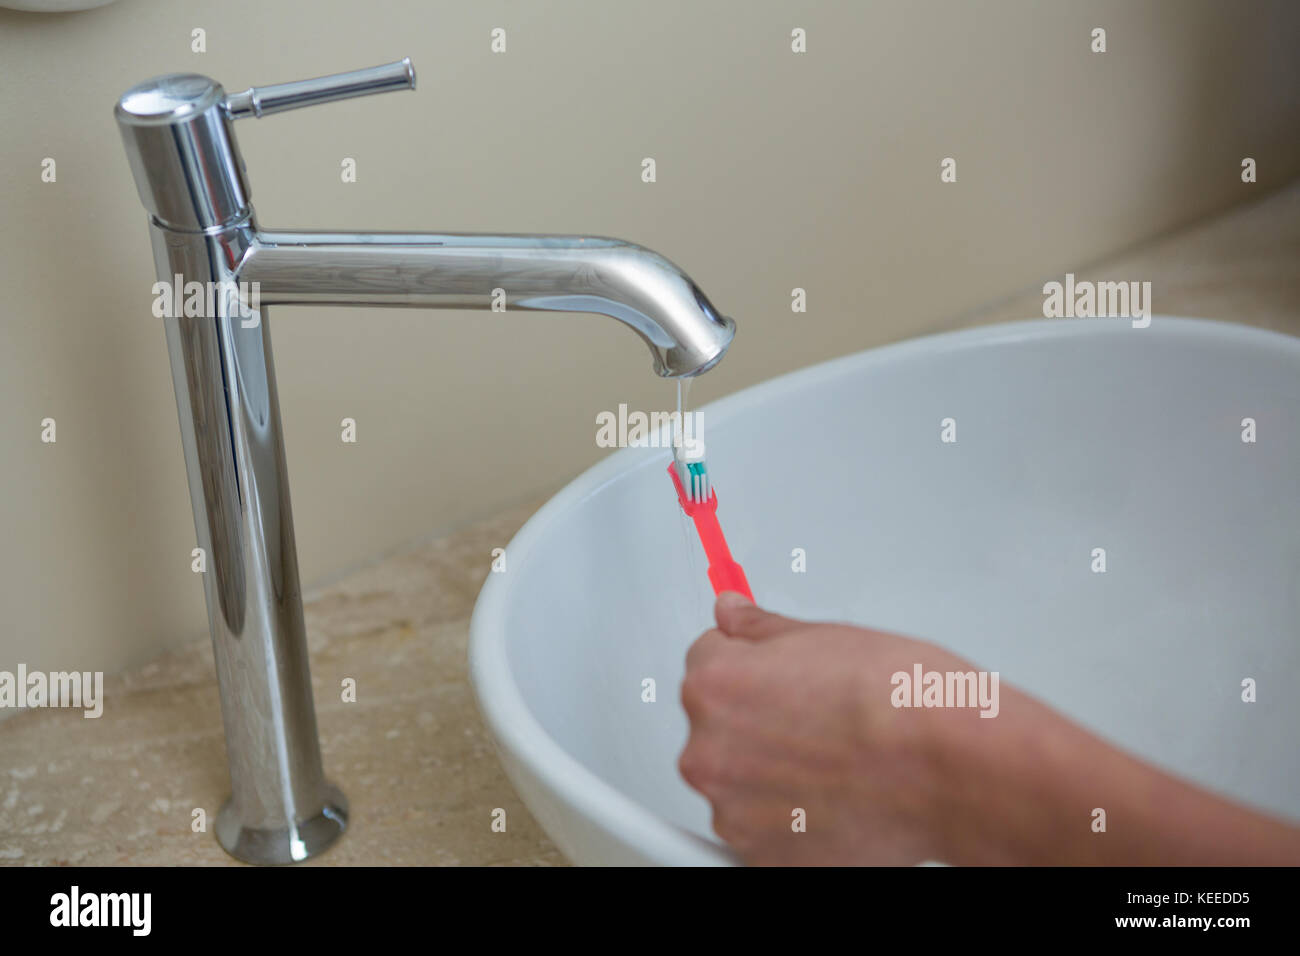 Hand Under Faucet Stock Photos & Hand Under Faucet Stock Images - Alamy